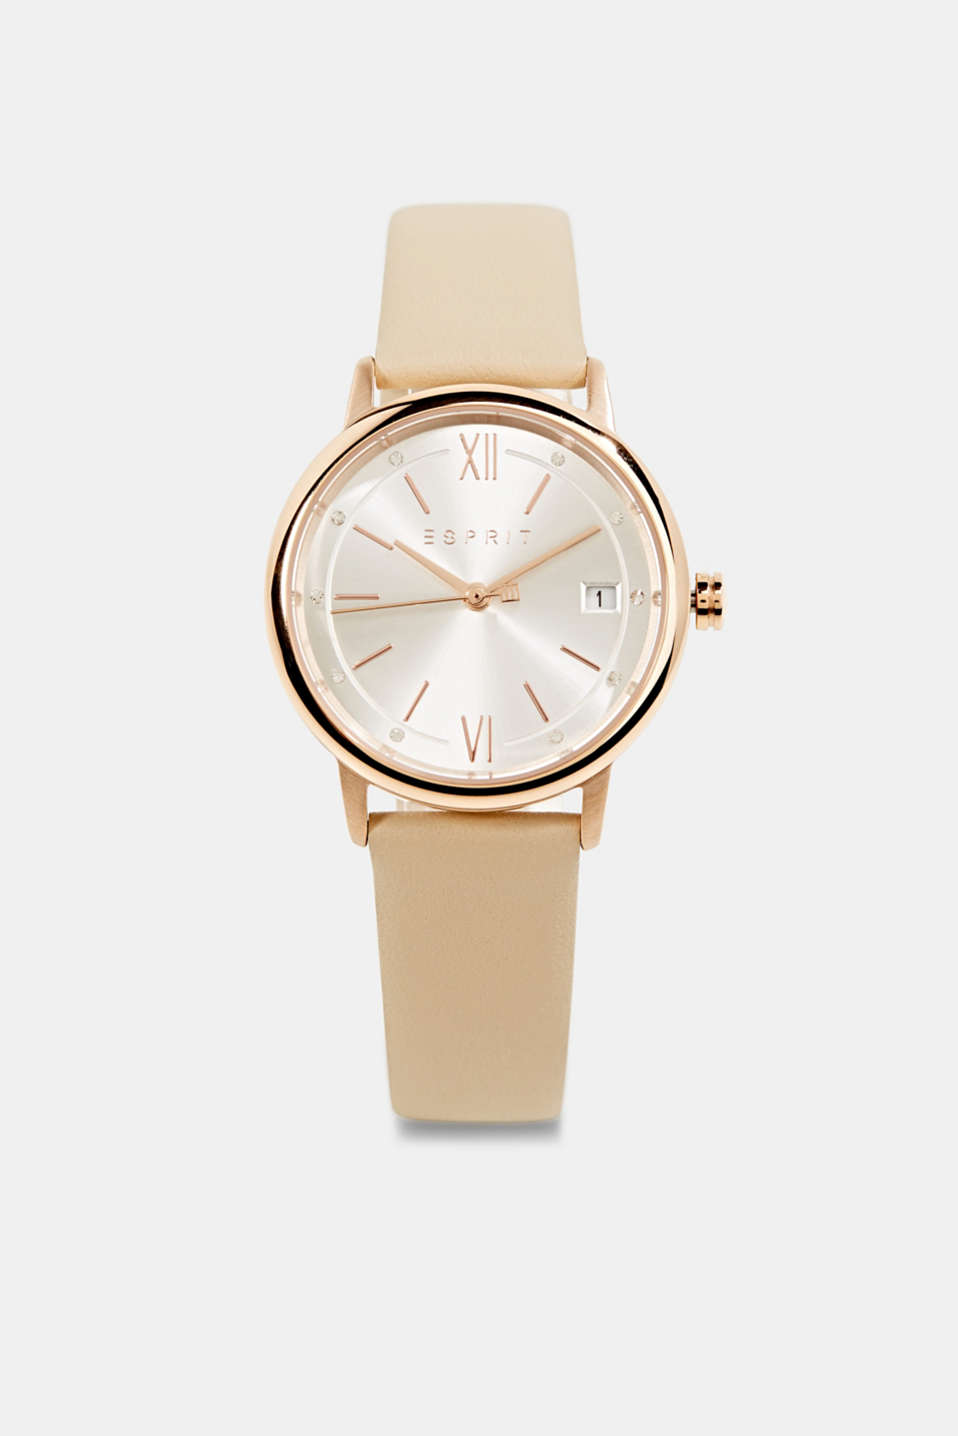 Esprit - Watch with leather strap, stainless steel